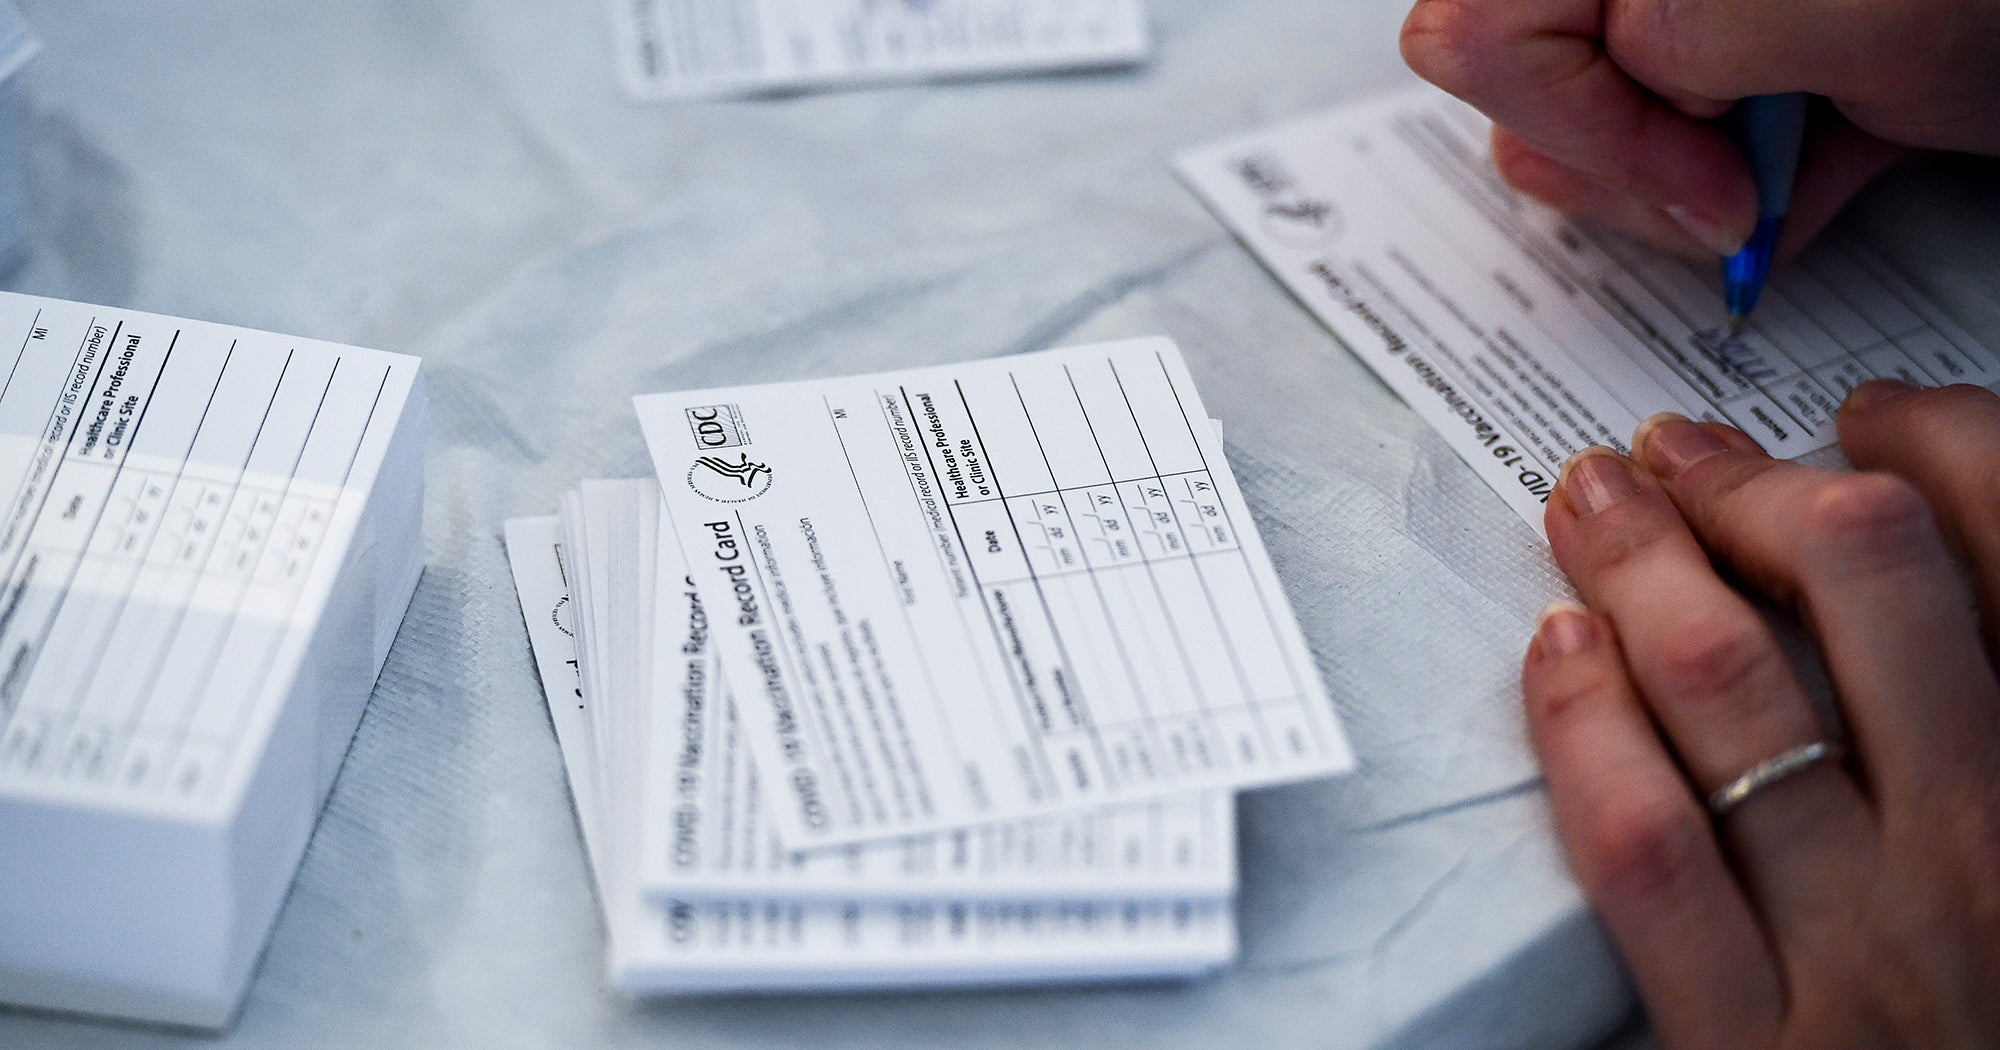 People Are Buying & Selling Fake Vaccine Cards. Is It Working?